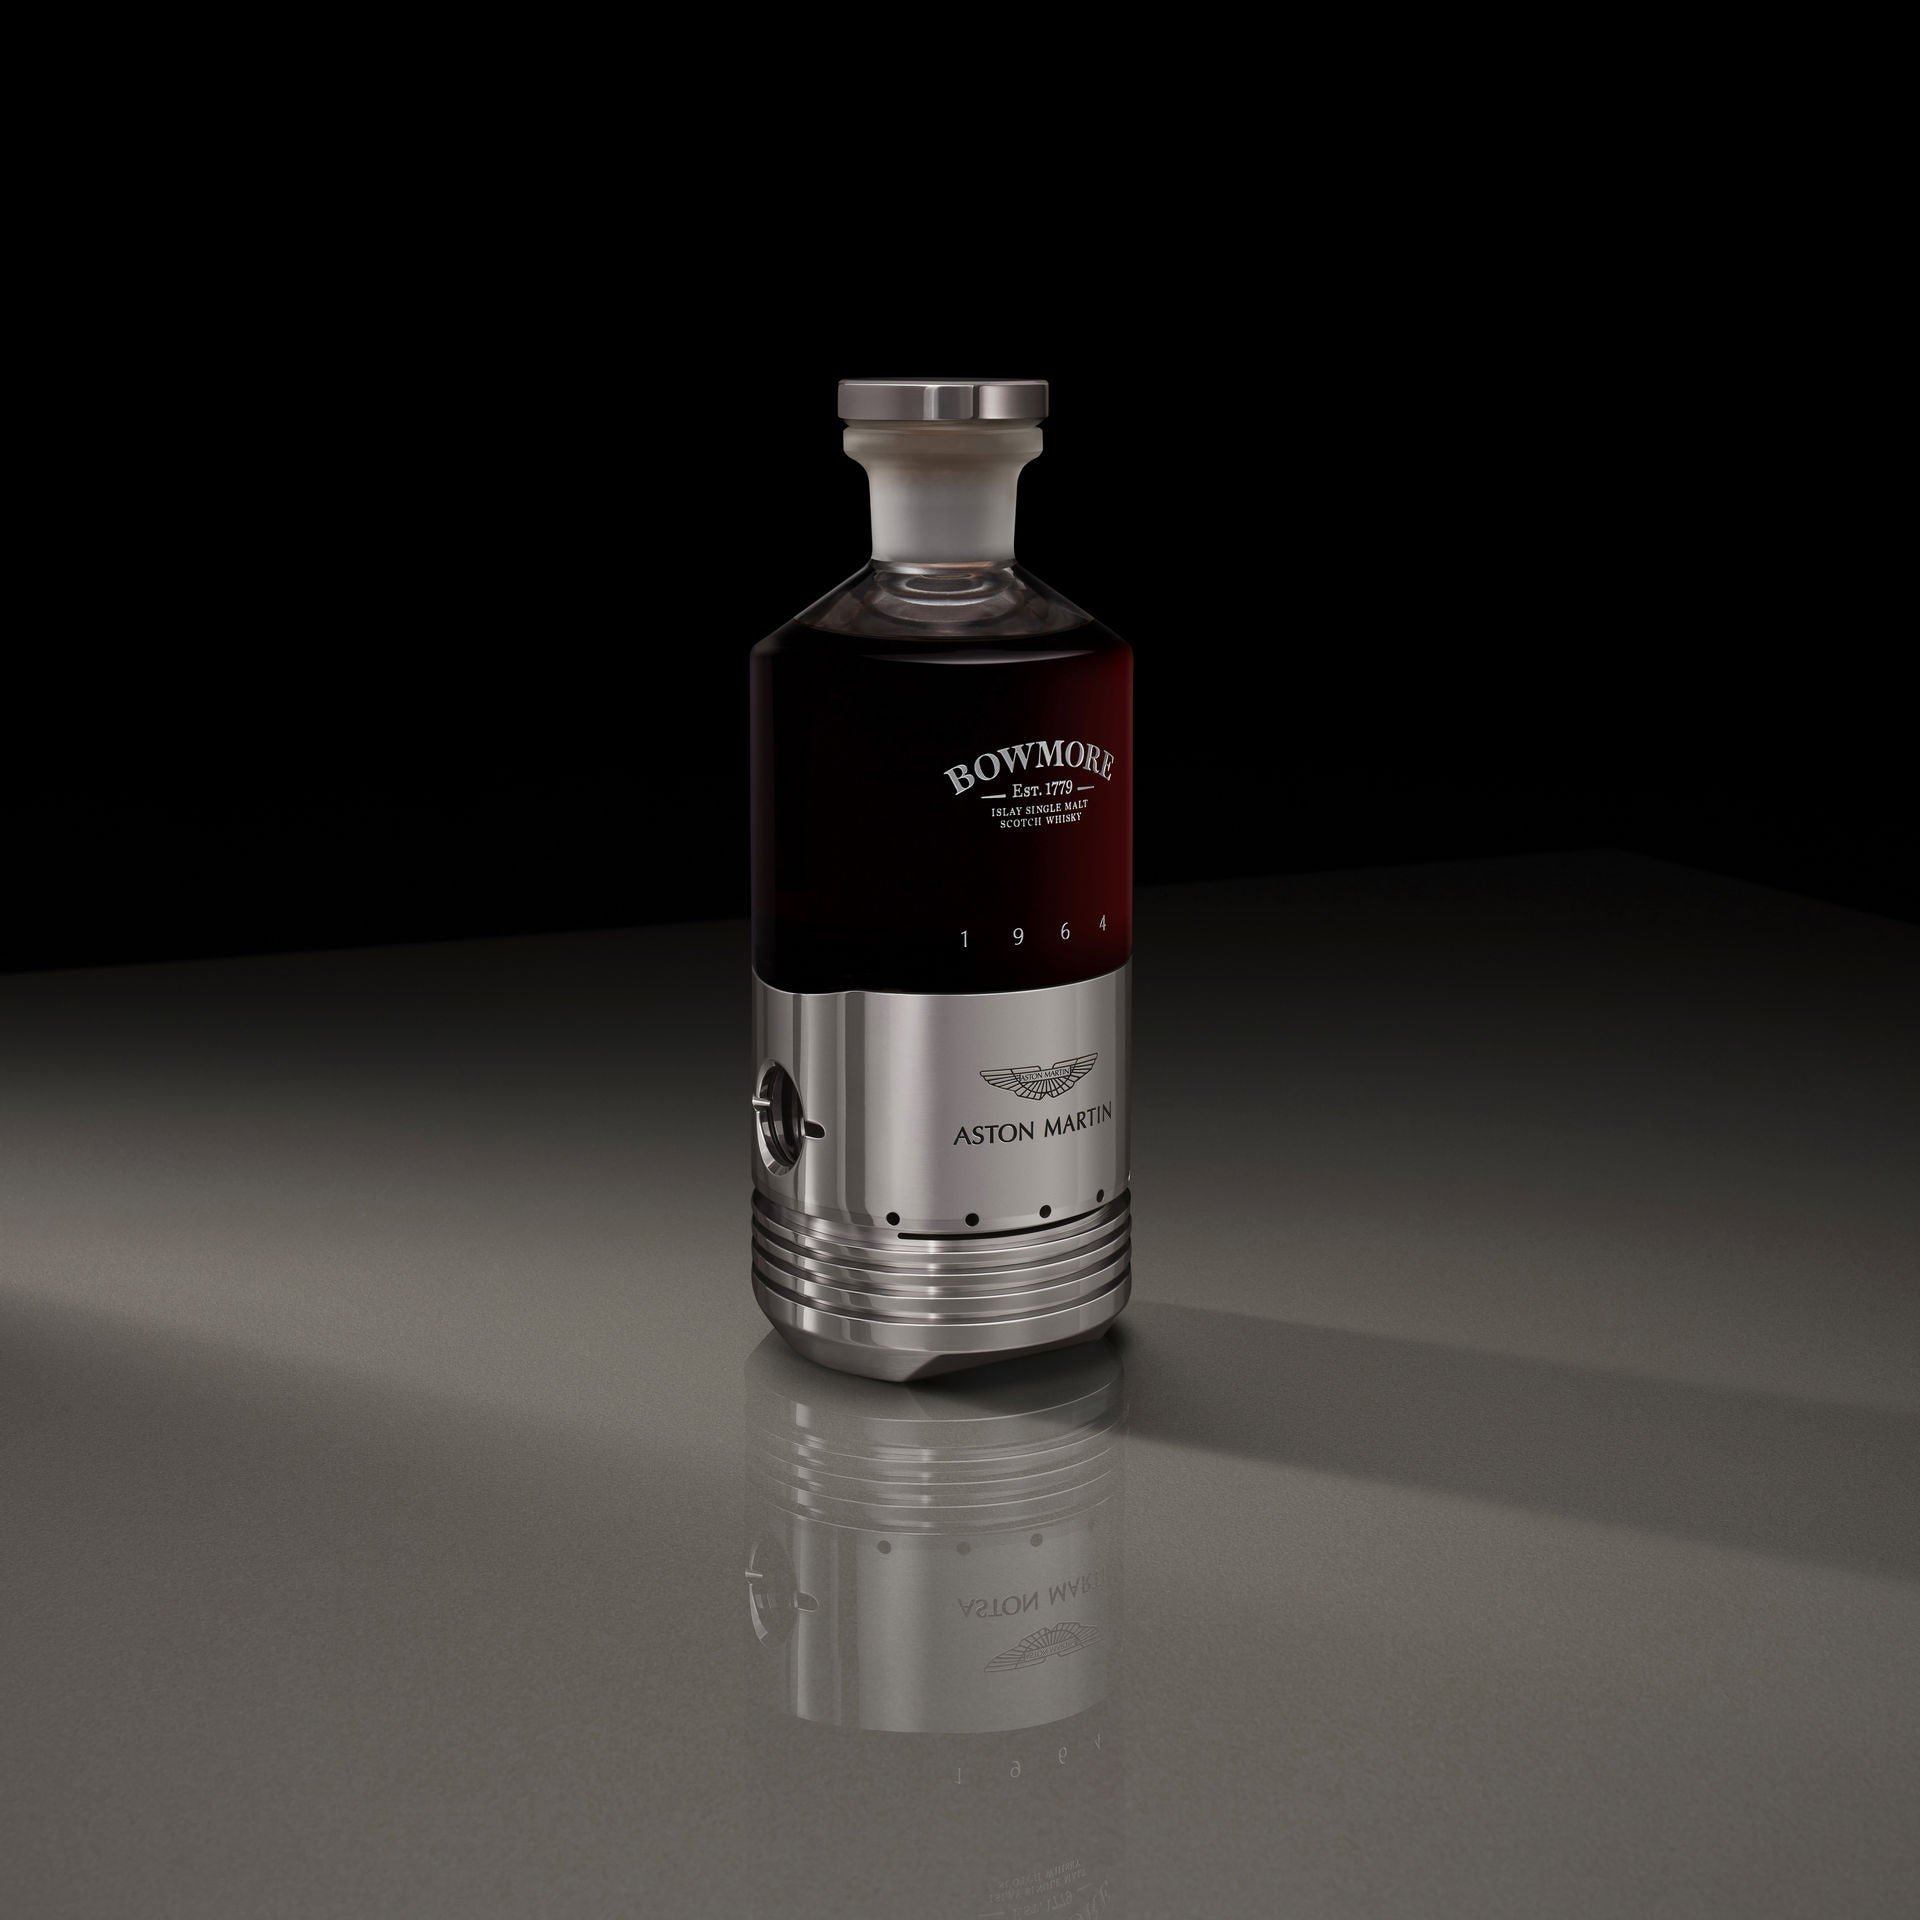 This $65,000 Bowmore Whisky Has A Real Aston Martin DB5